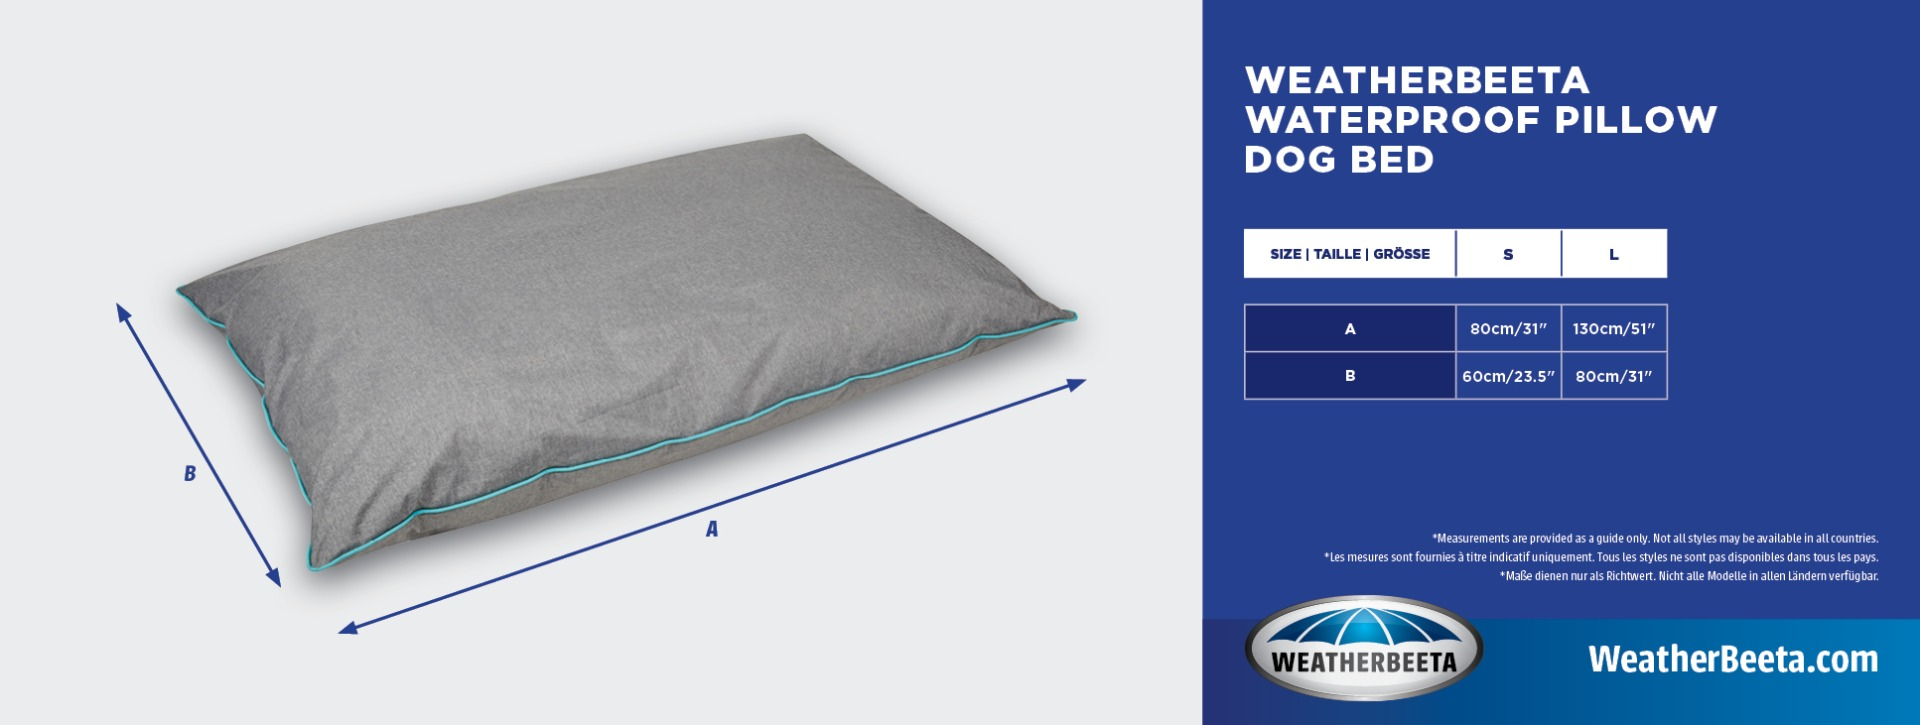 WeatherBeeta Waterproof Pillow Dog Bed Size Chart